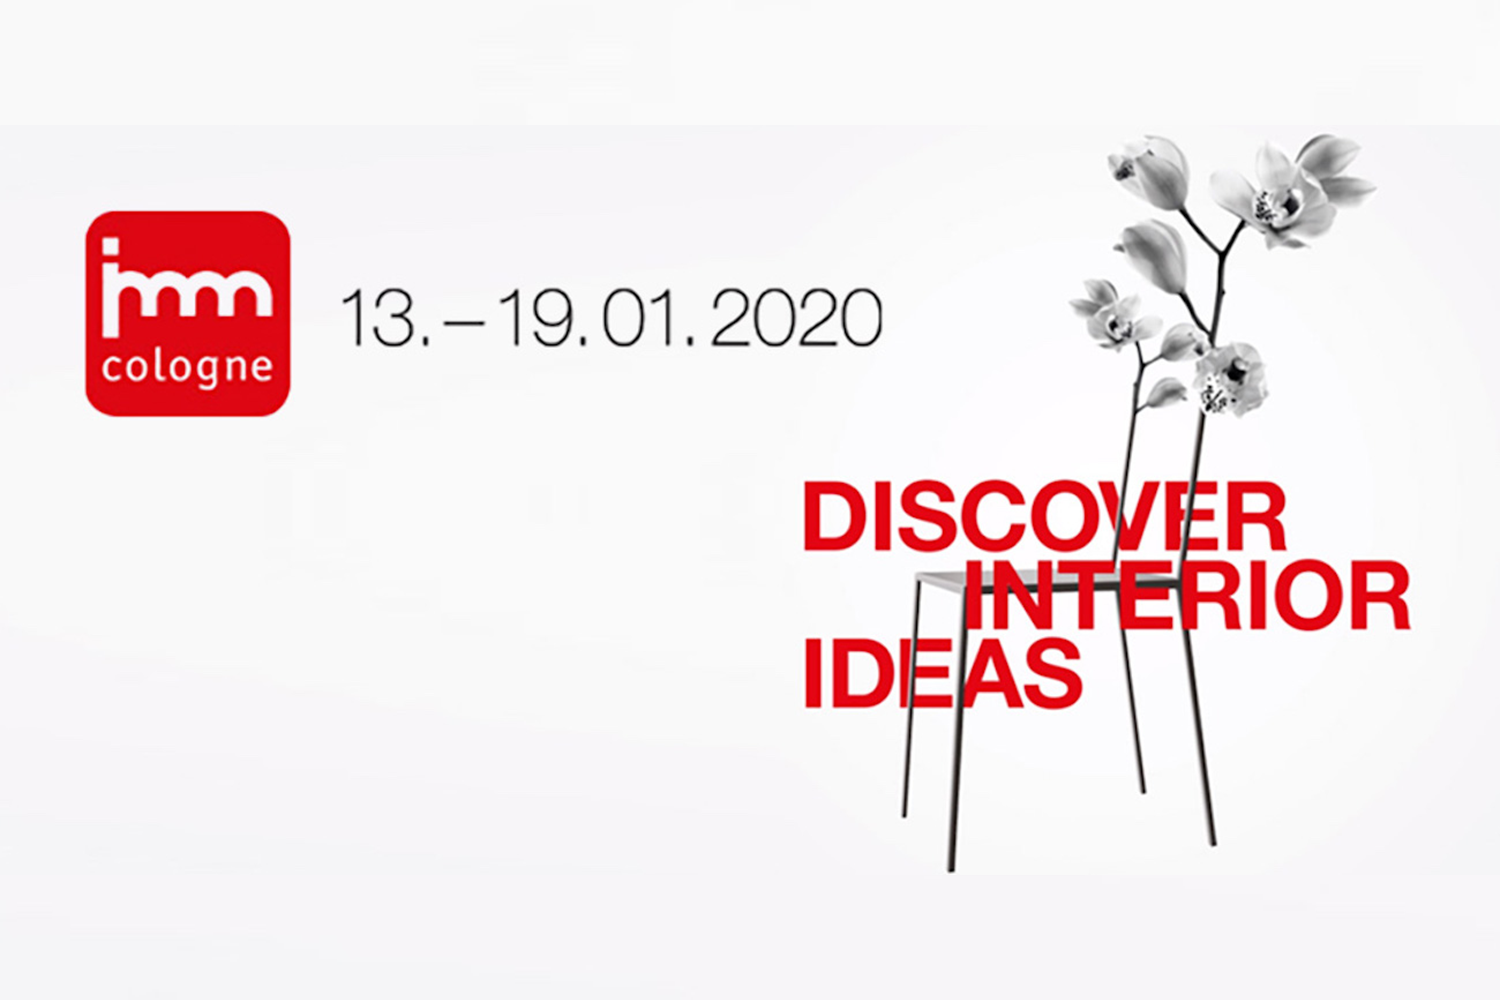 imm cologne 2020 kicks off the new decade